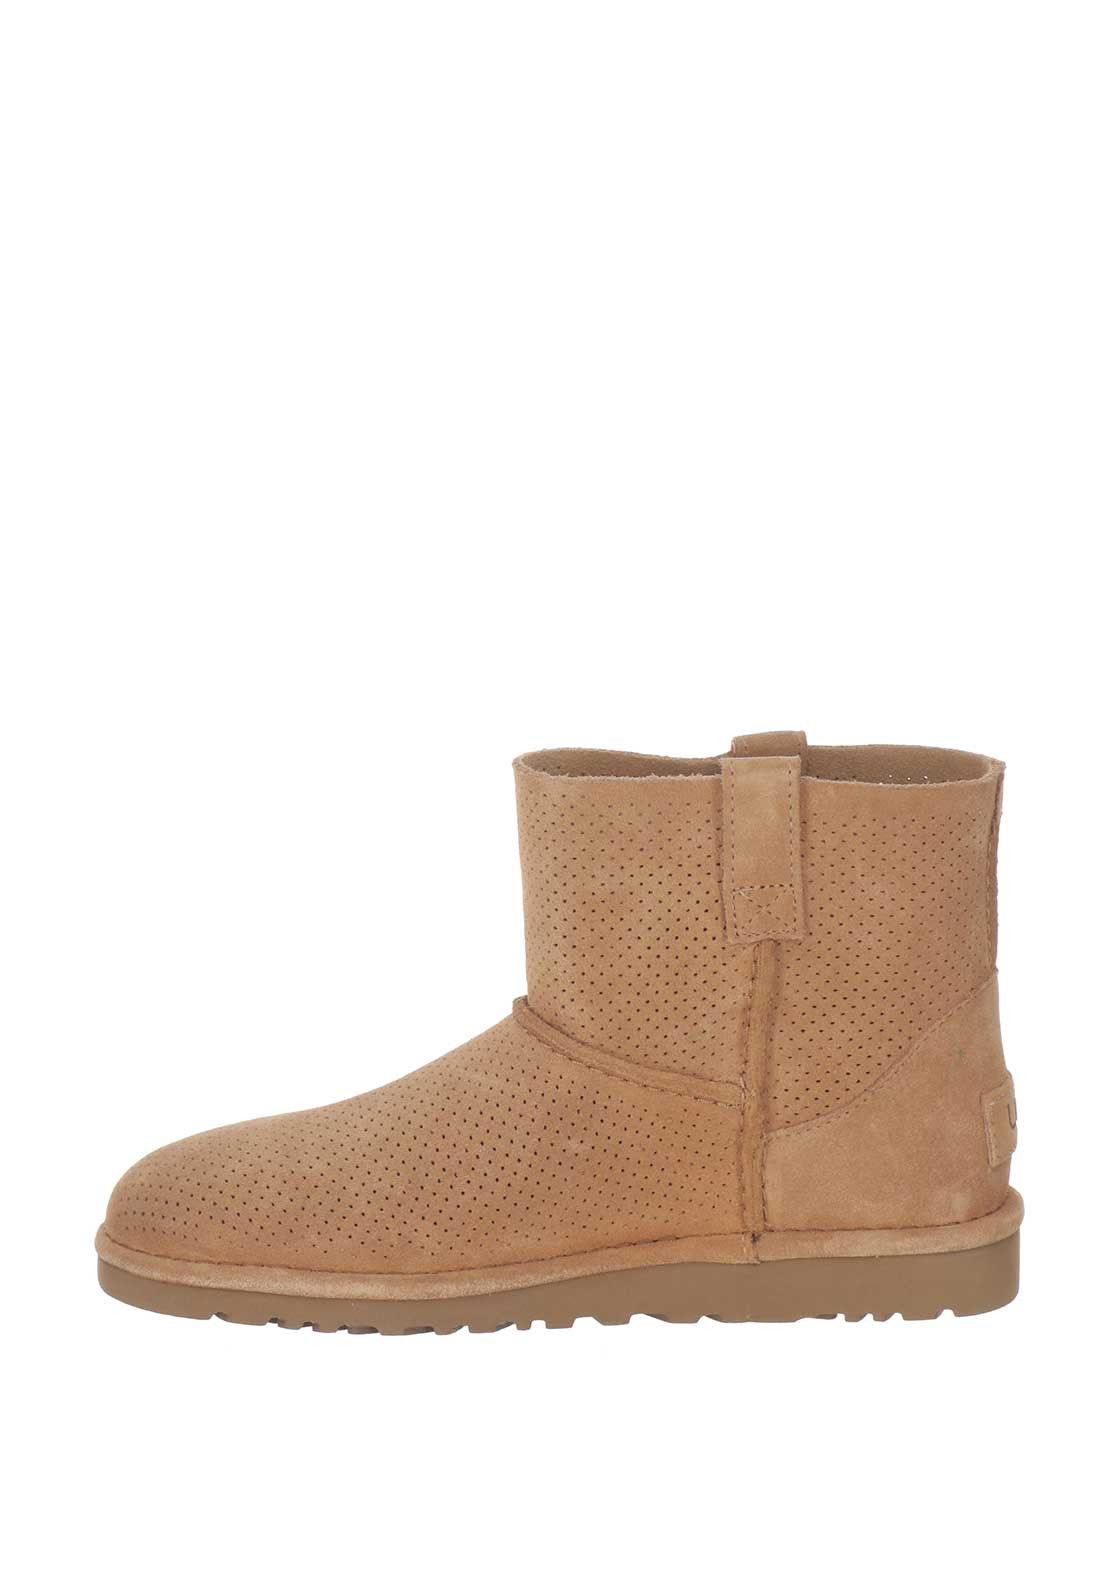 3e260d55f68 UGG Australia Womens Unlined Suede Boots, Tan